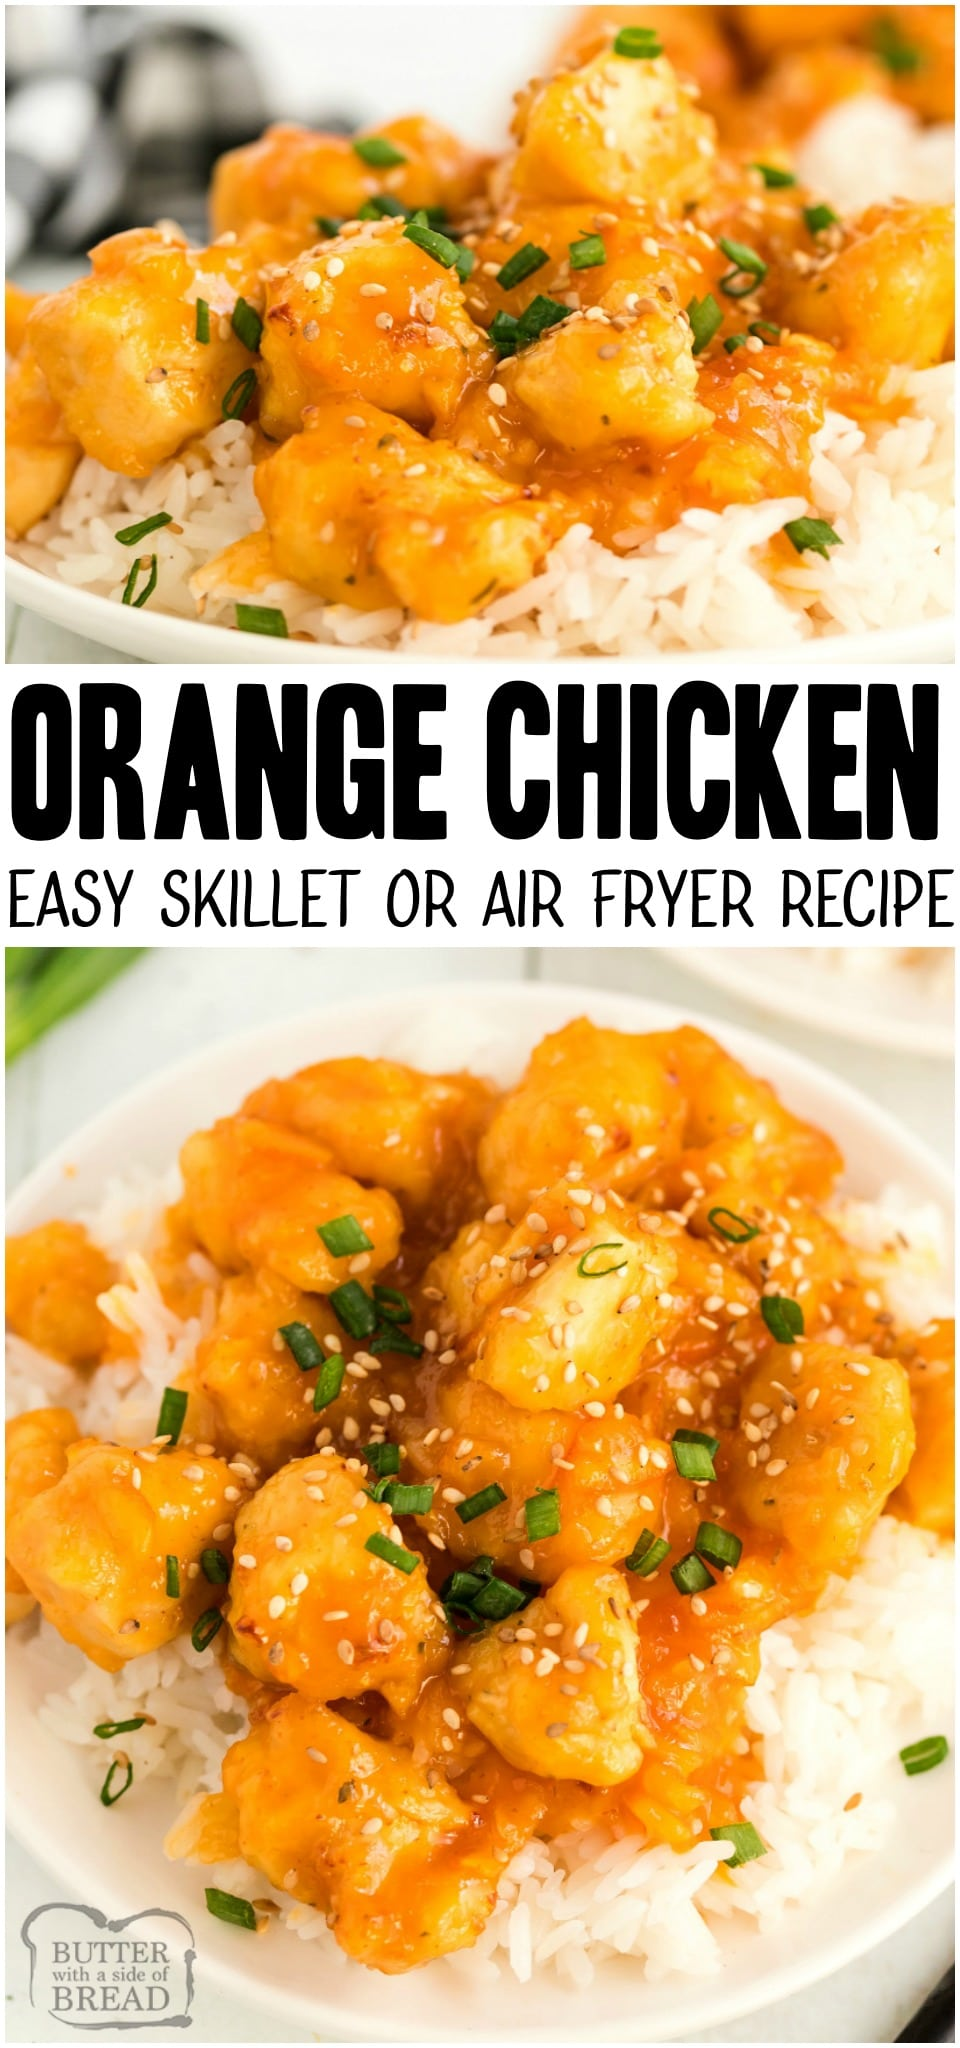 Homemade Orange Chicken made with a sweet & savory orange sauce and tender breaded chicken. This orange chicken recipe with orange marmalade is simple and perfect alongside white rice! #chicken #dinner #orange #asianrecipe #orangechicken #easyrecipe #chickendinner from BUTTER WITH A SIDE OF BREAD